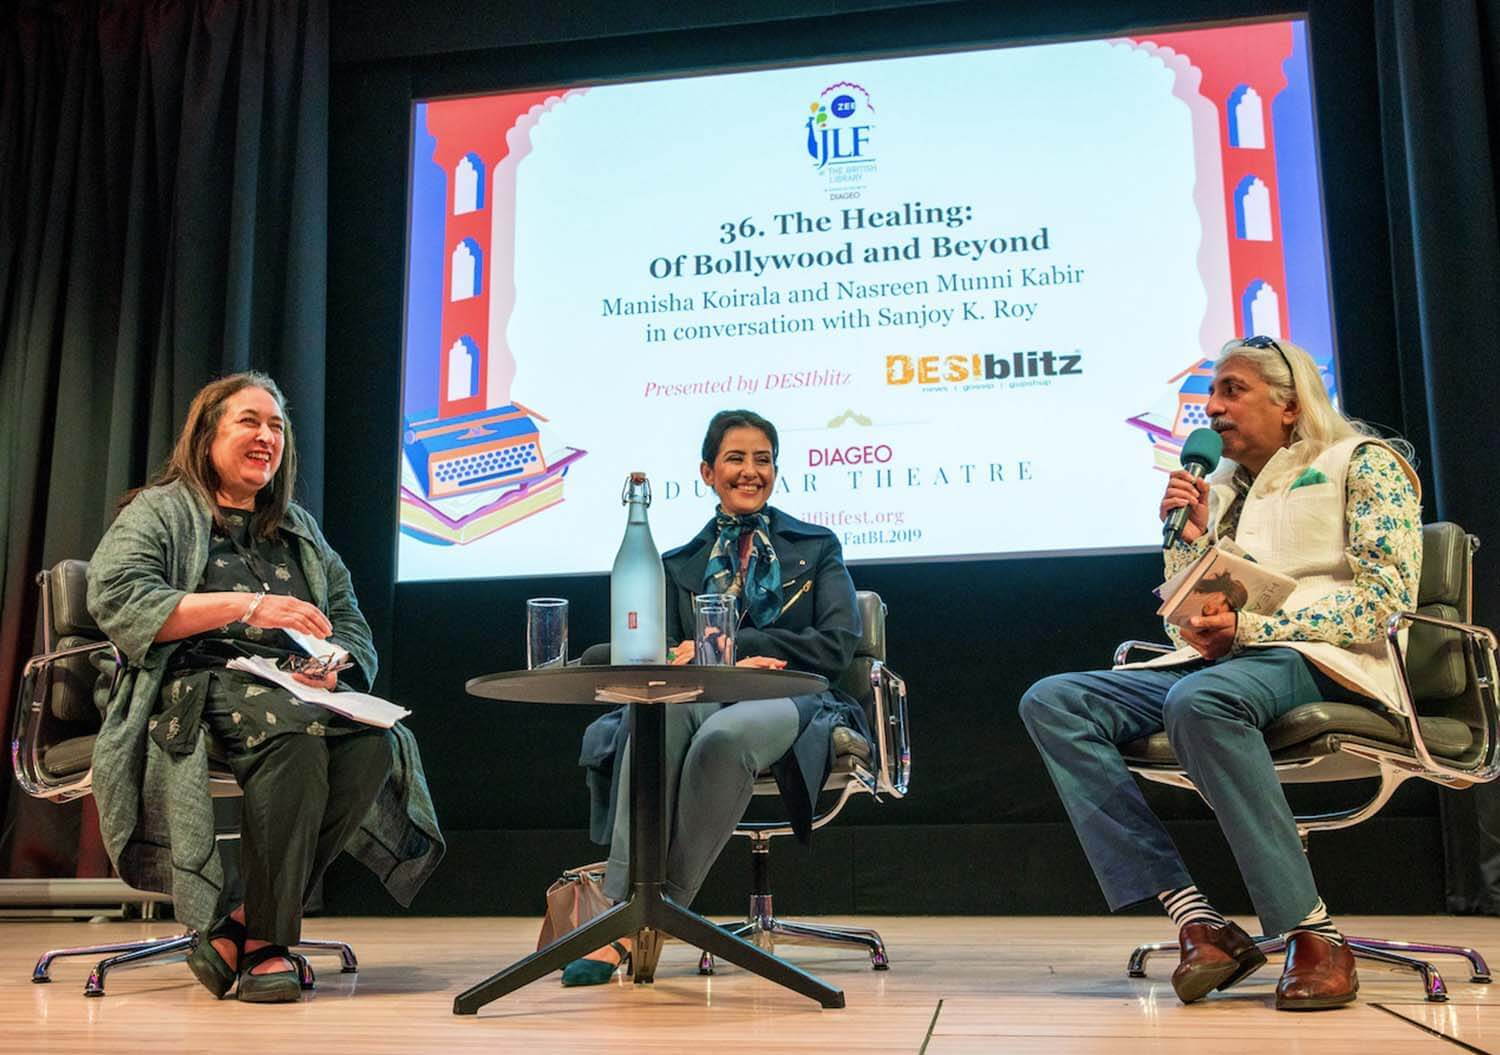 e1ba1d5375 6 days ago. 0 Cover. The sixth edition of ZEE JLF at the British Library,  held over the second weekend of June commenced with the opening address, ...